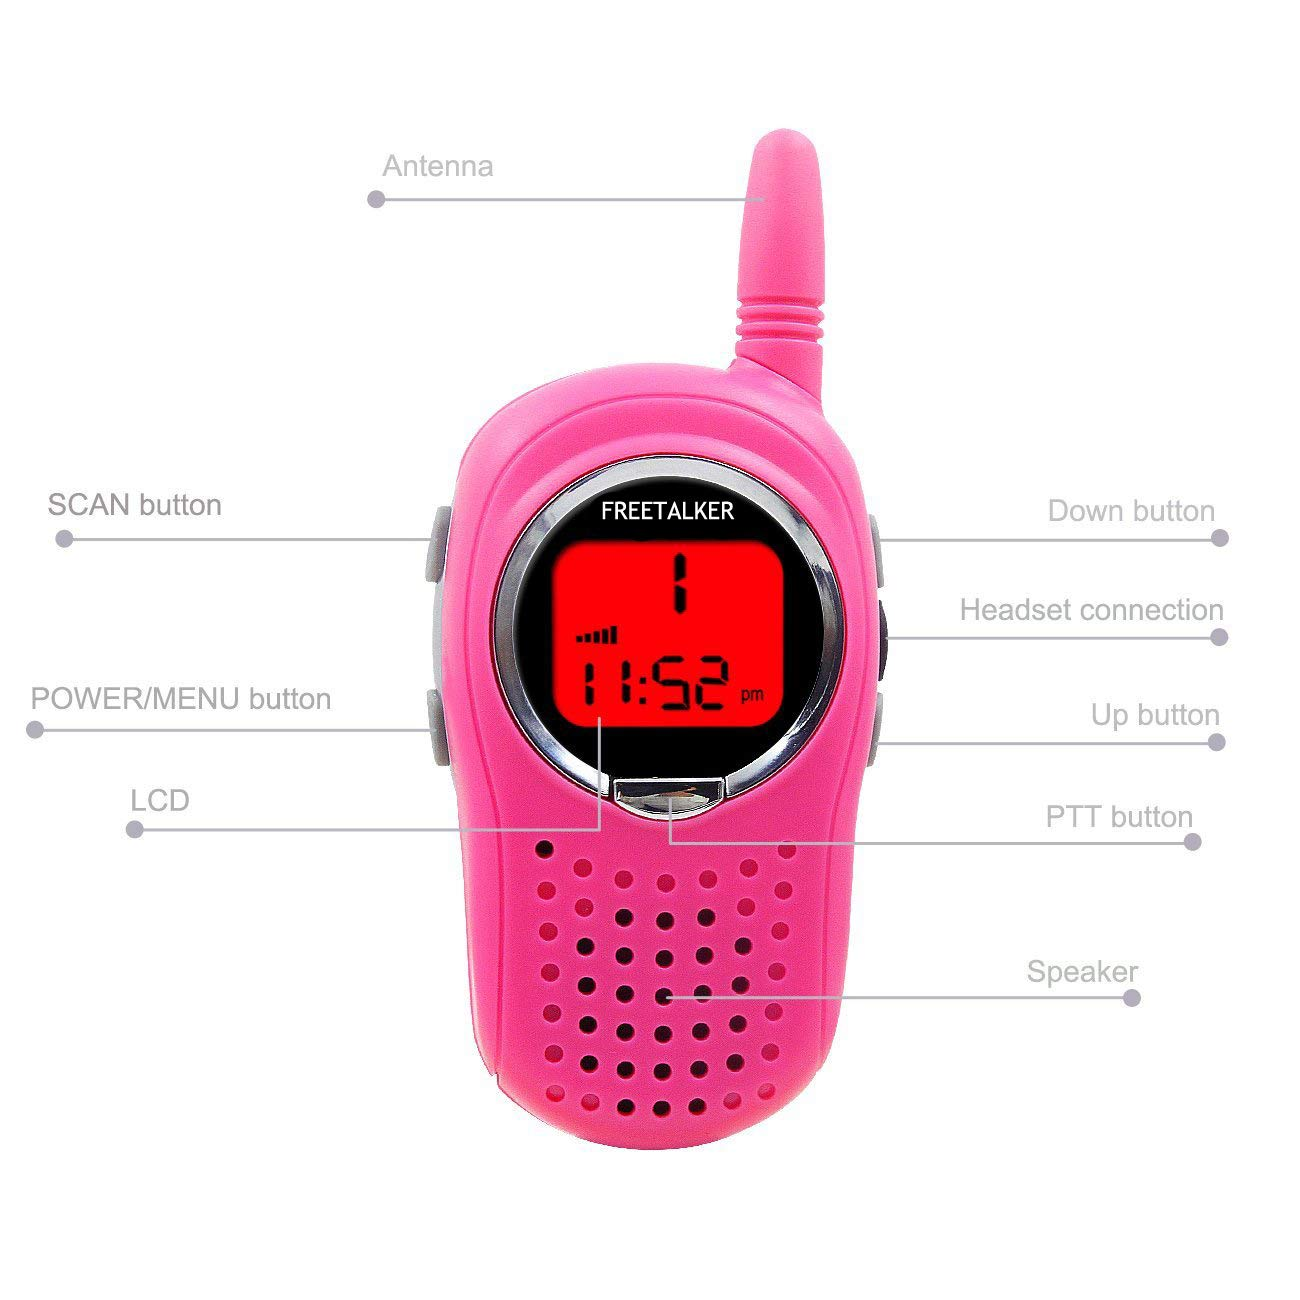 Banbu Toys for 3-12 Year Old Boys, Teen Girl Gifts, Walkie Talkies for Kids Teen Boy Gifts Birthday,2Packs,Pink by Banbu (Image #2)